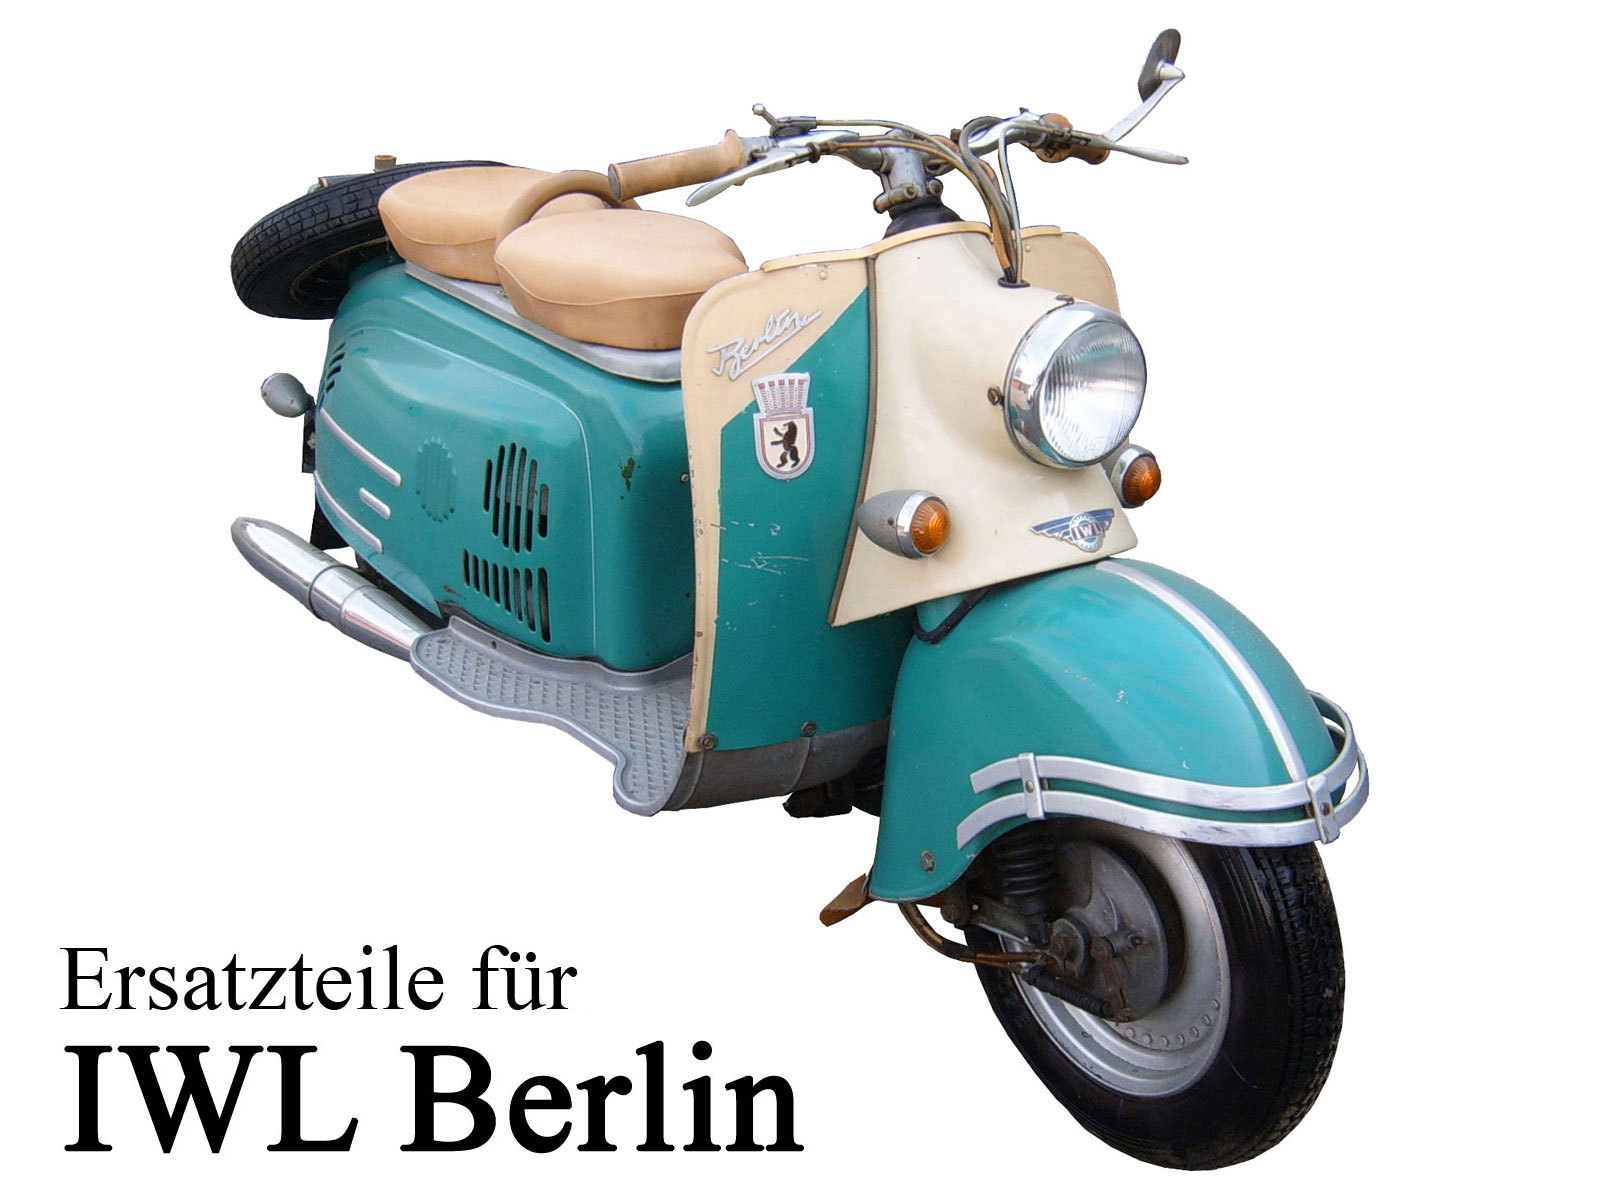 iwl ersatzteile f pitty wiesel berlin troll im ddr motorrad shop. Black Bedroom Furniture Sets. Home Design Ideas